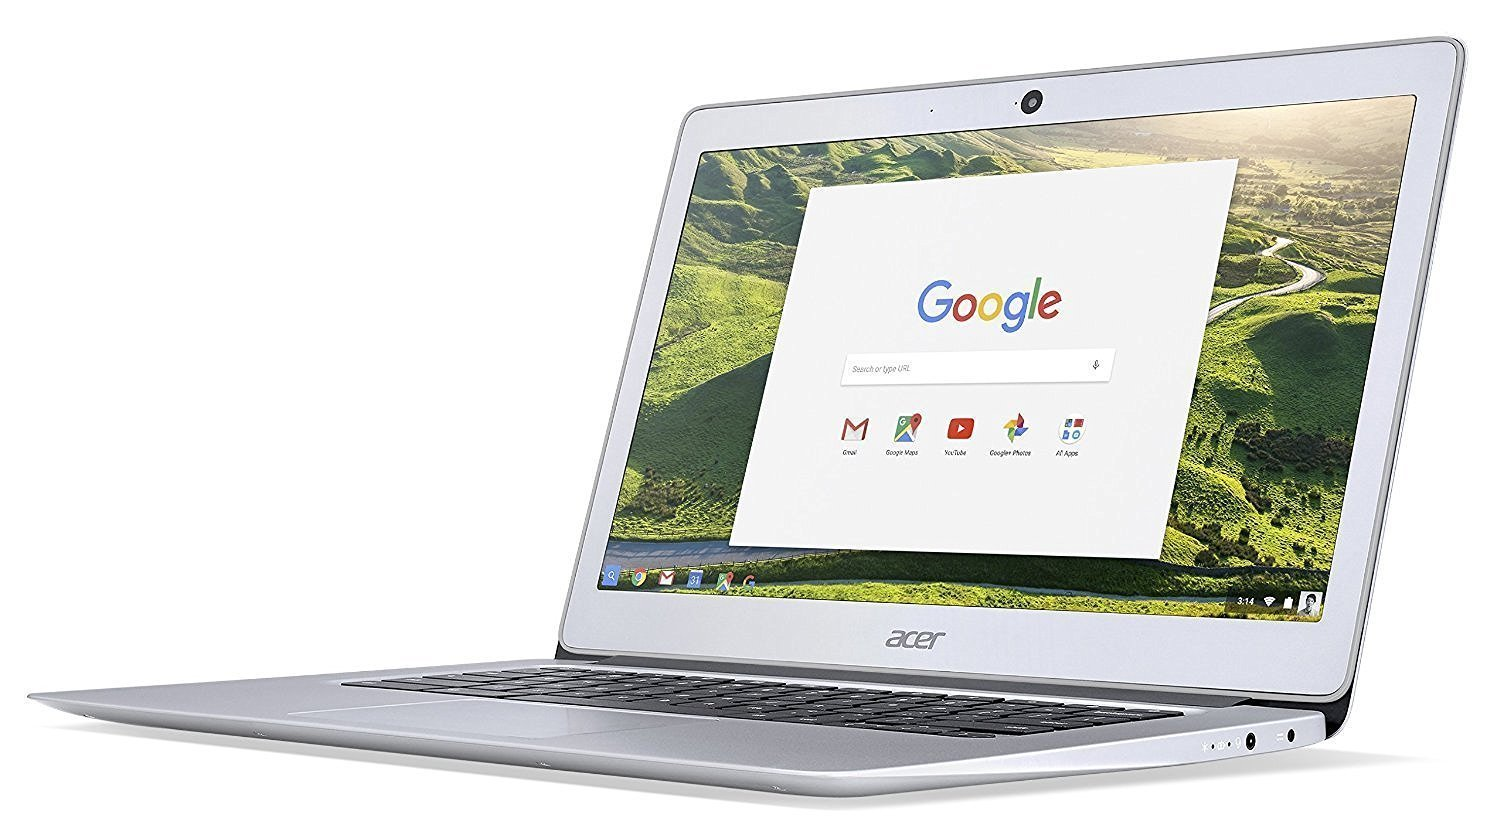 2018 Acer 14'' FHD IPS Display Premium Flagship Business Chromebook-Intel Celeron Quad-Core Processor Up to 2.24Ghz, 4GB RAM, 32GB SSD, HDMI, WiFi, Bluetooth Chrome OS-(Certified Refurbished)